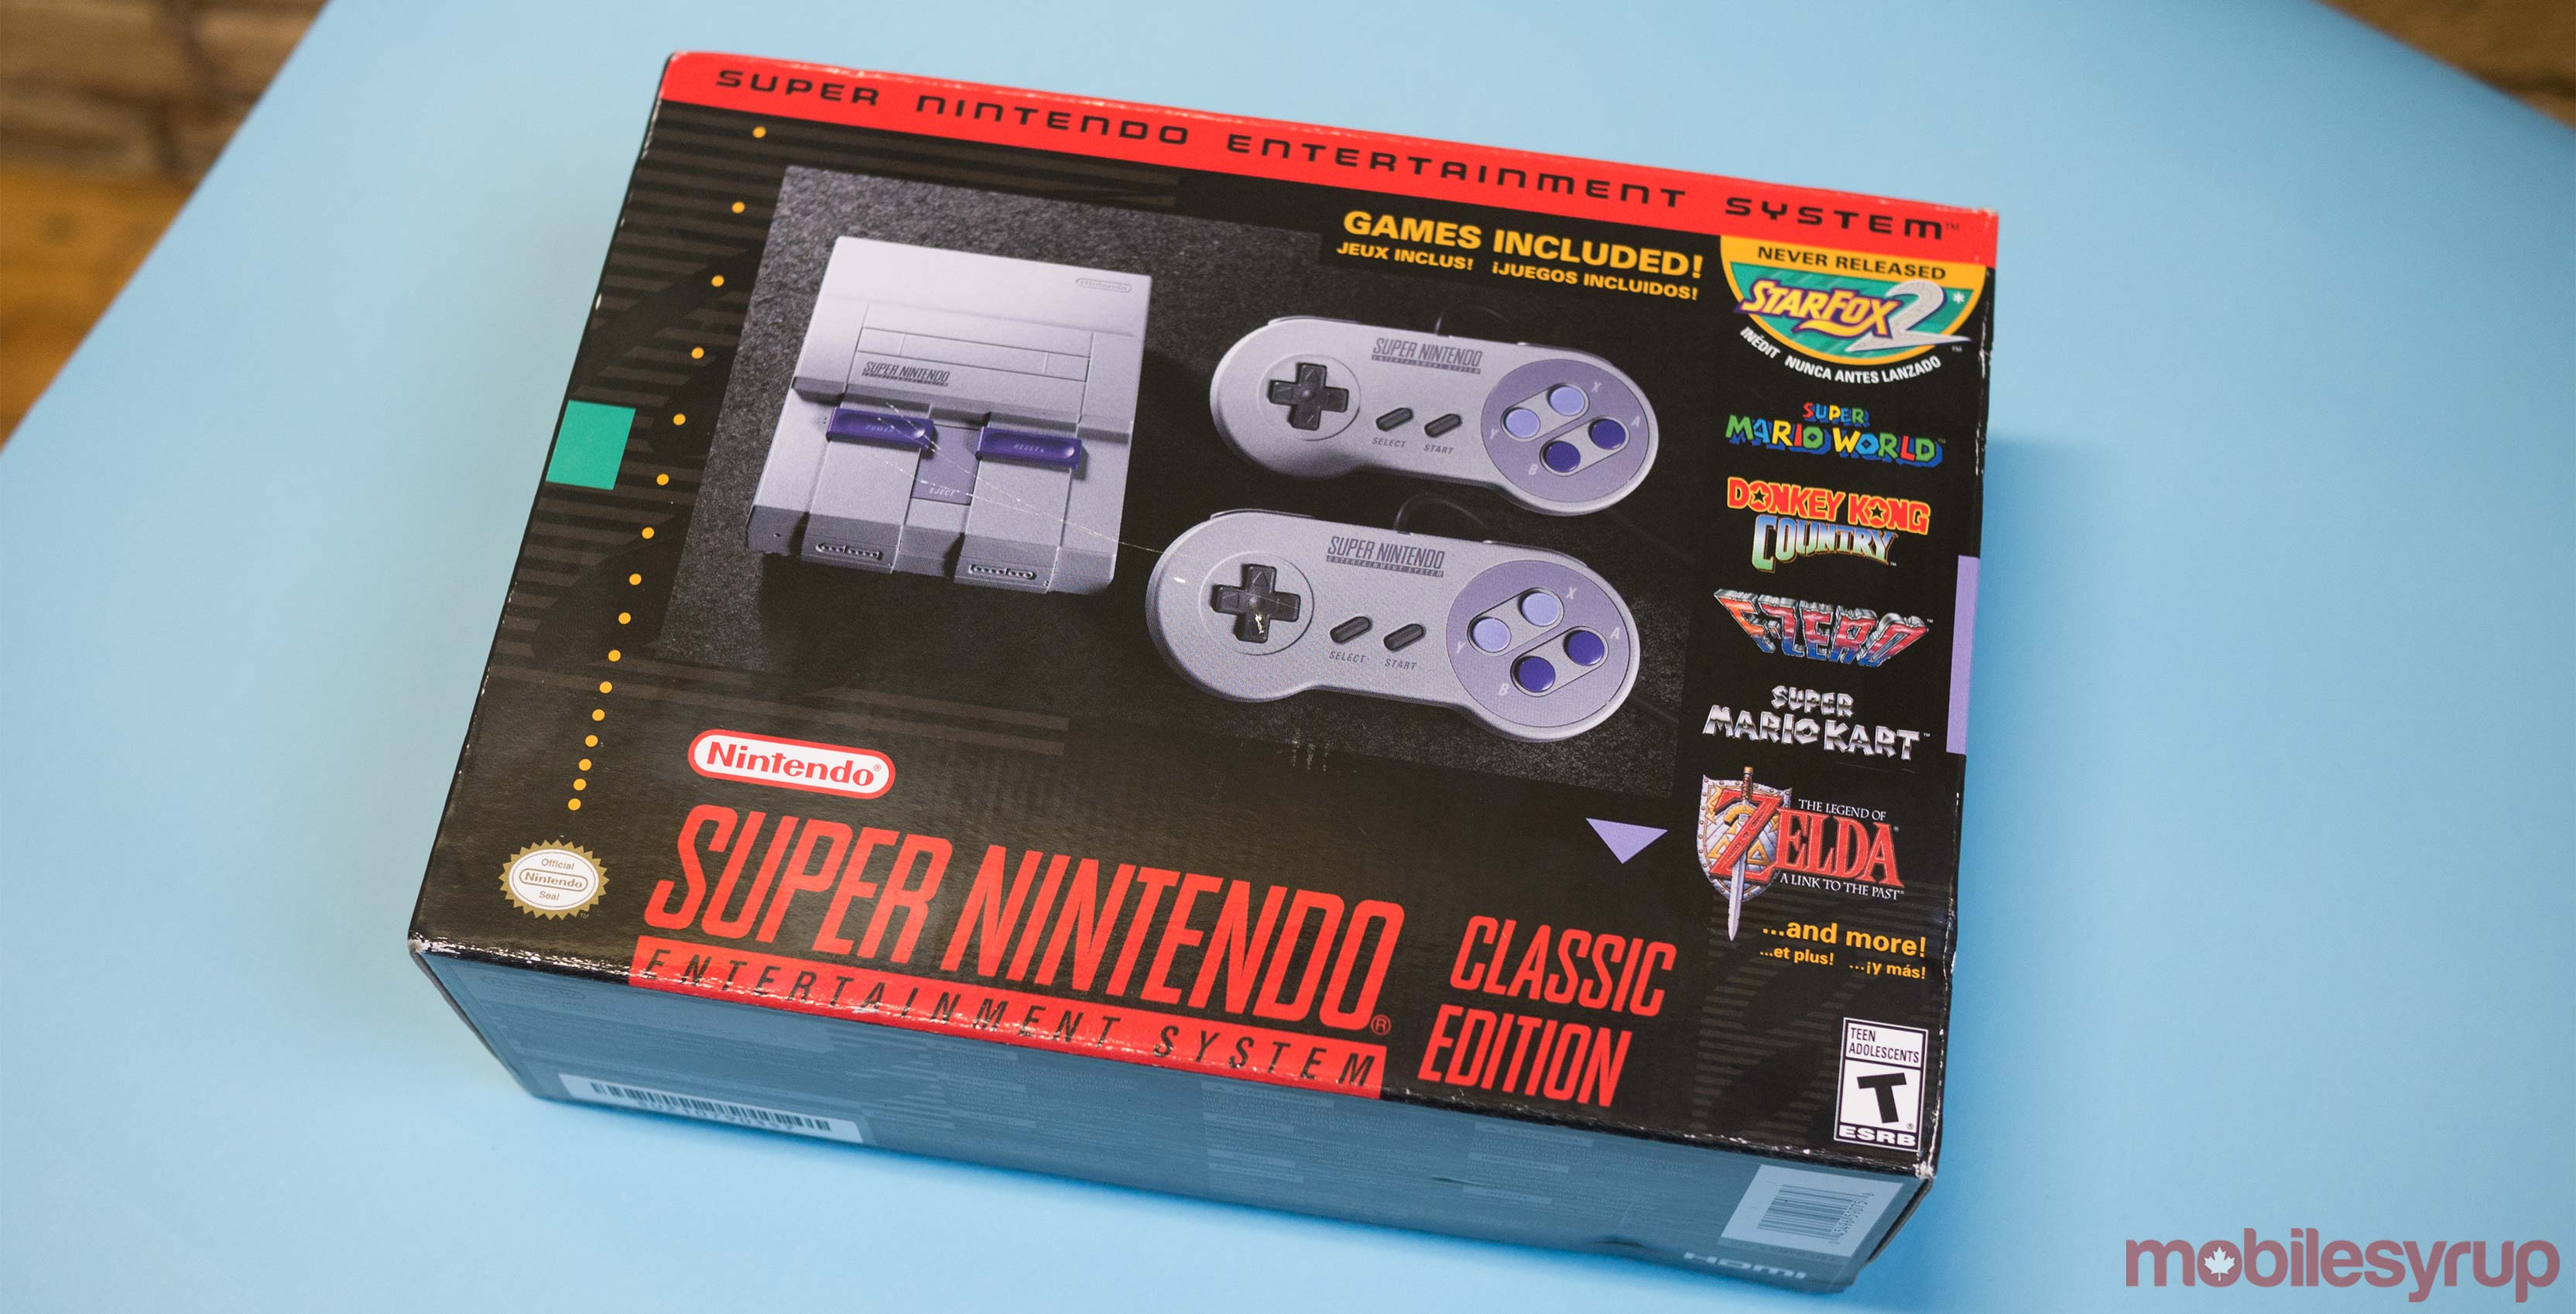 Best Buy Canada To Sell The Snes Classic Edition This